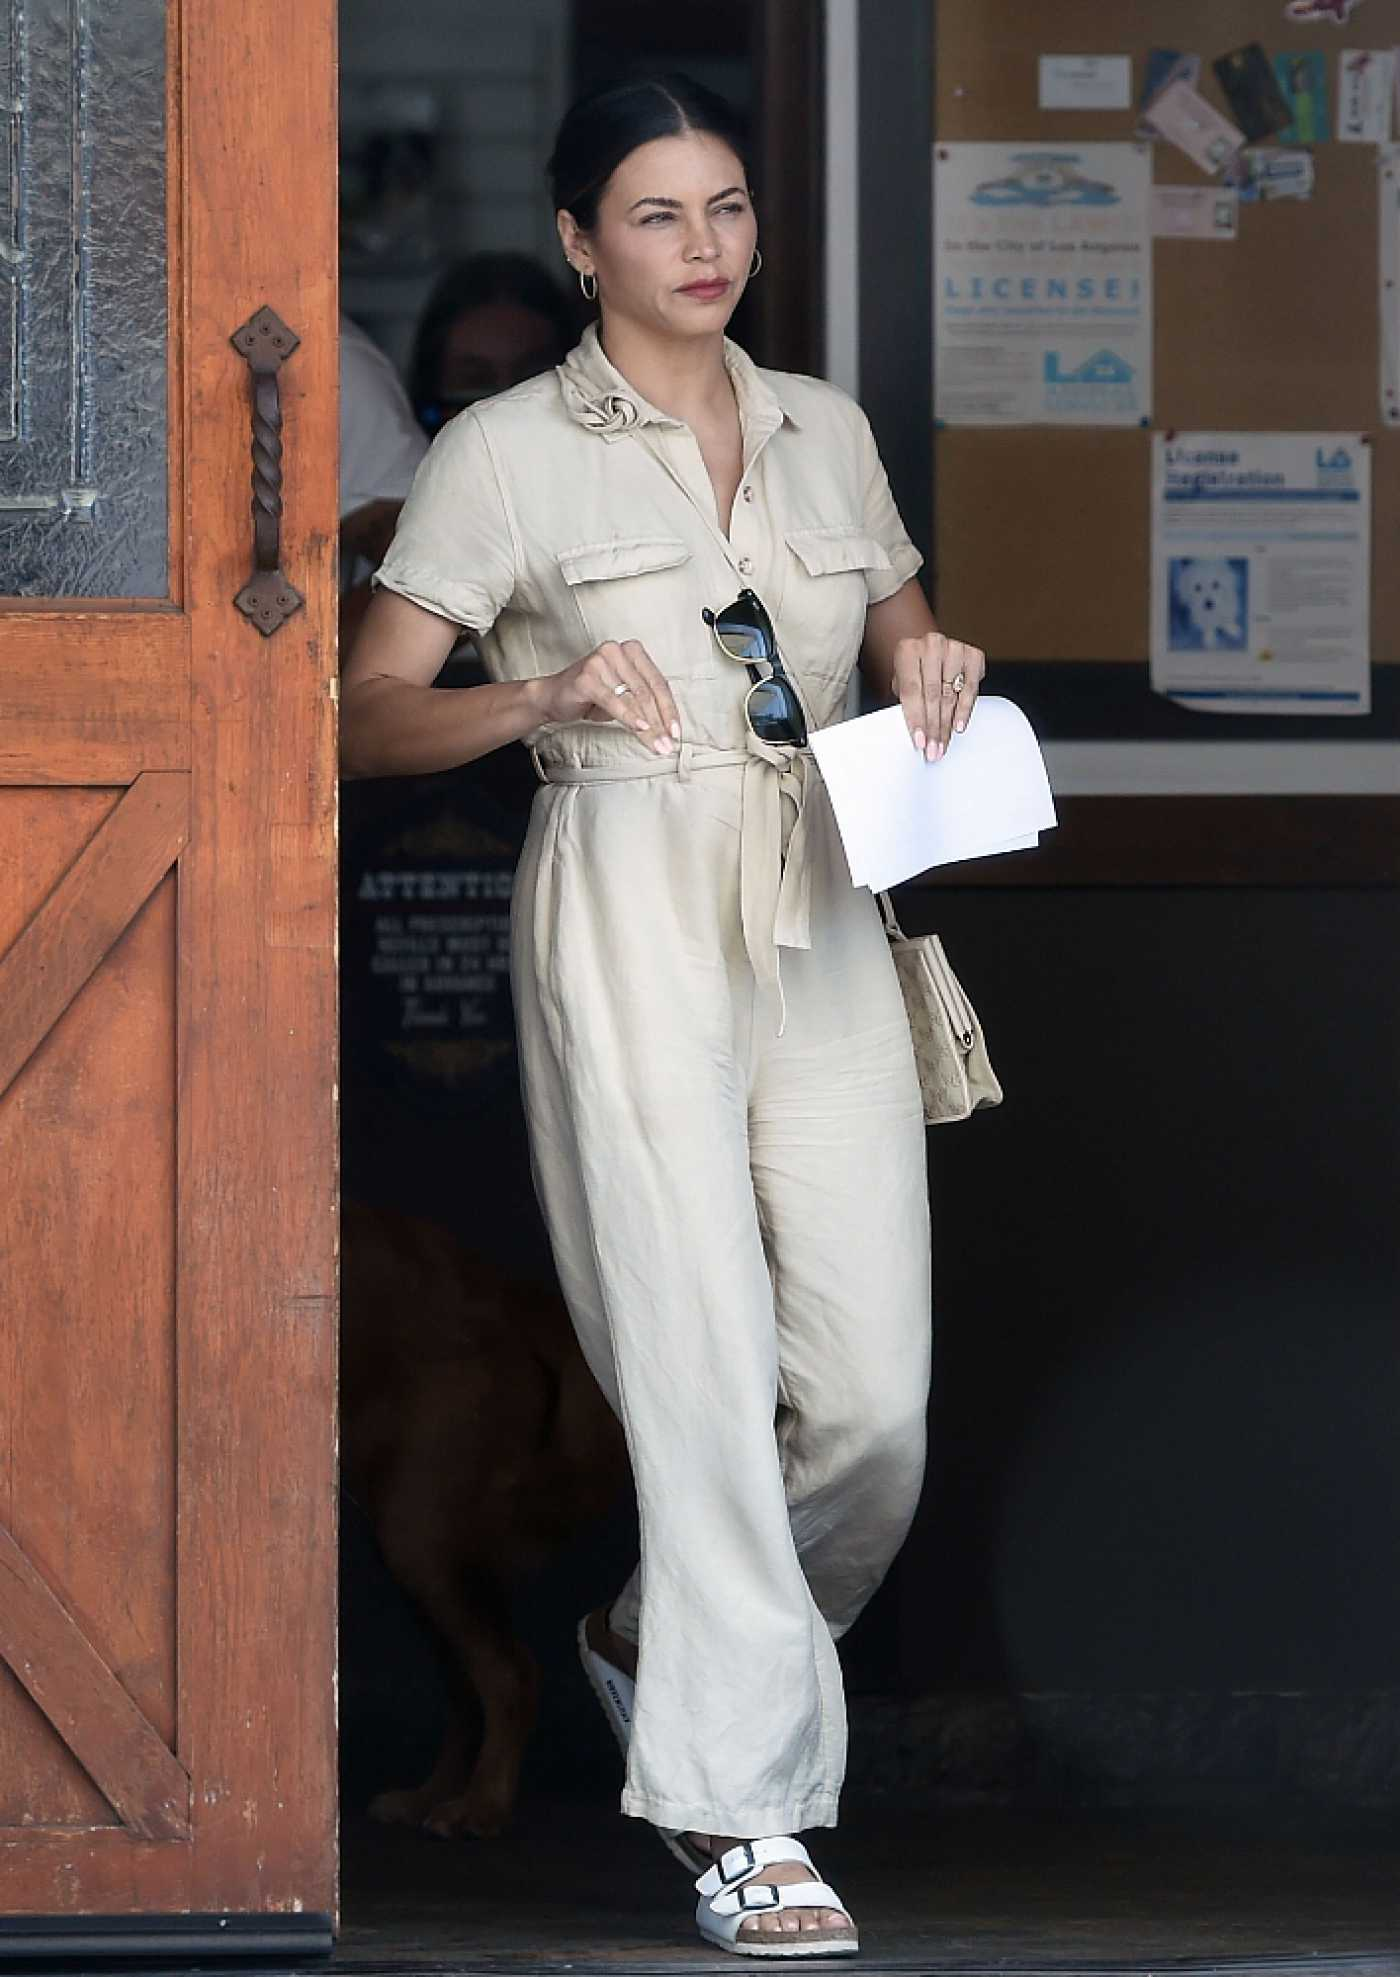 Jenna Dewan in a Beige Jumpsuit Goes Shopping at Petco in Los Angeles 07/12/2021